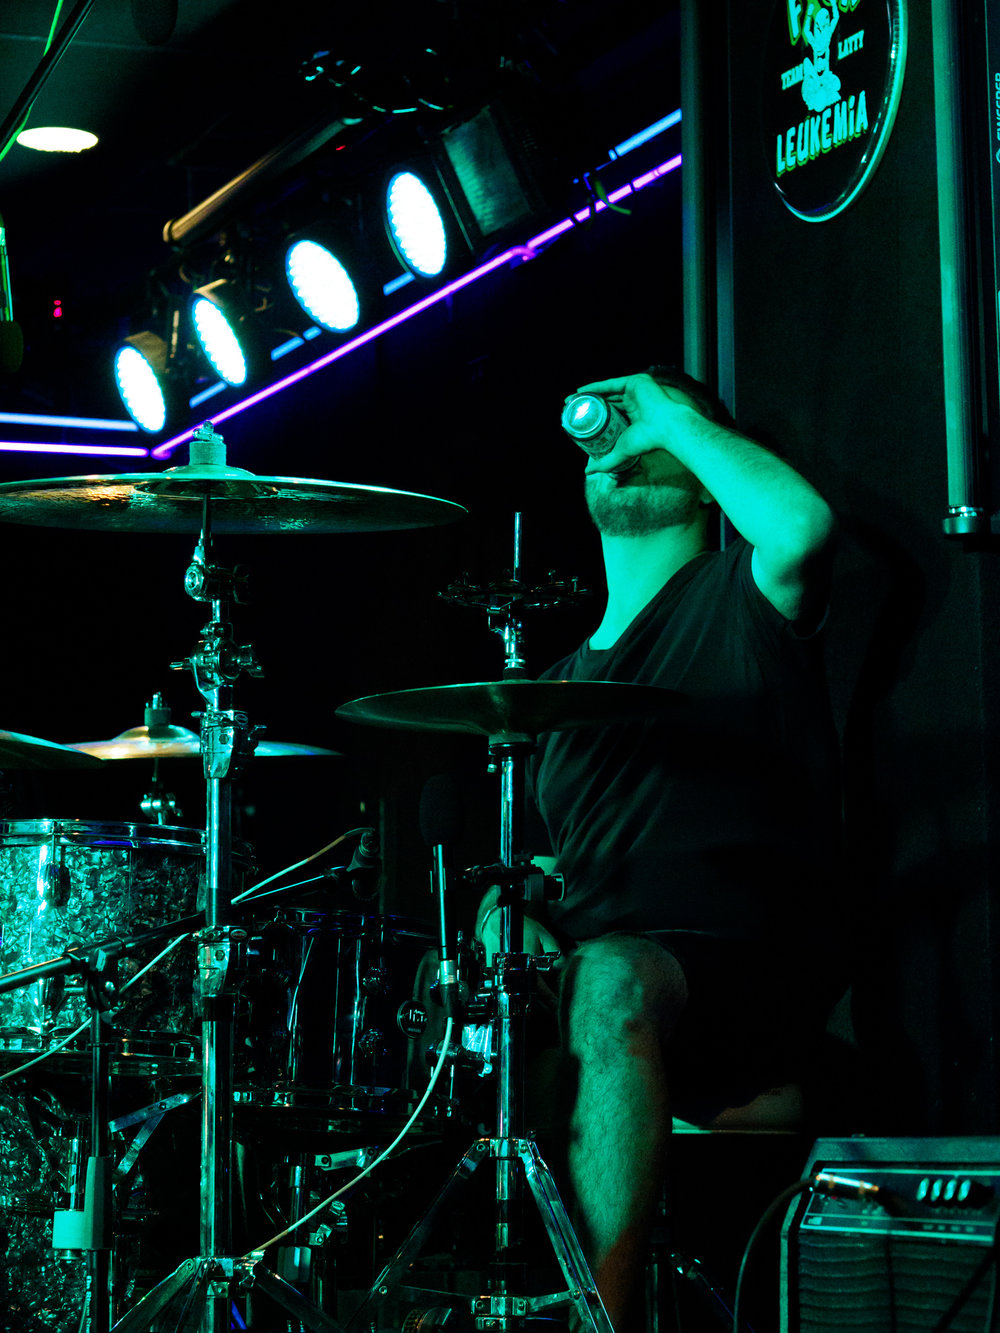 17-06-10_Concert_at_the_Foundry_6100082.JPG